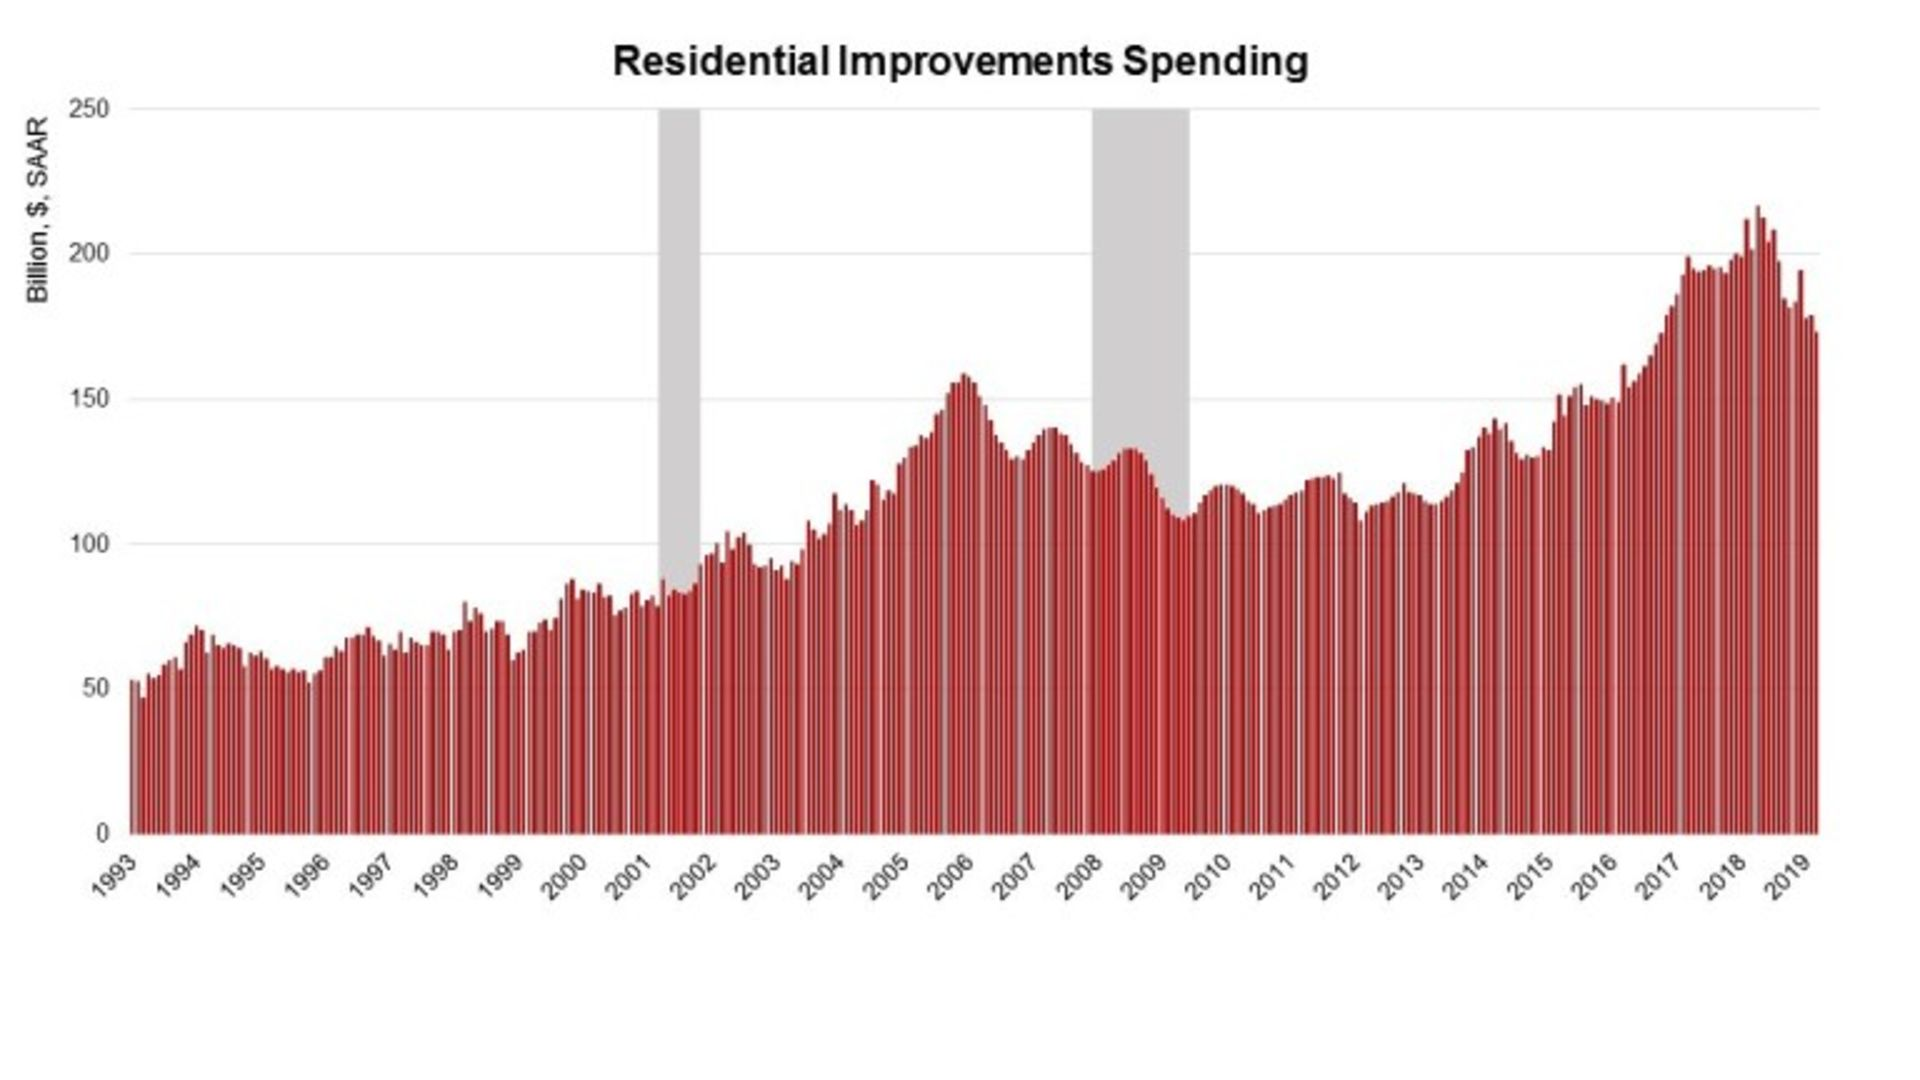 Spending on Residential Improvements Edges Down in March